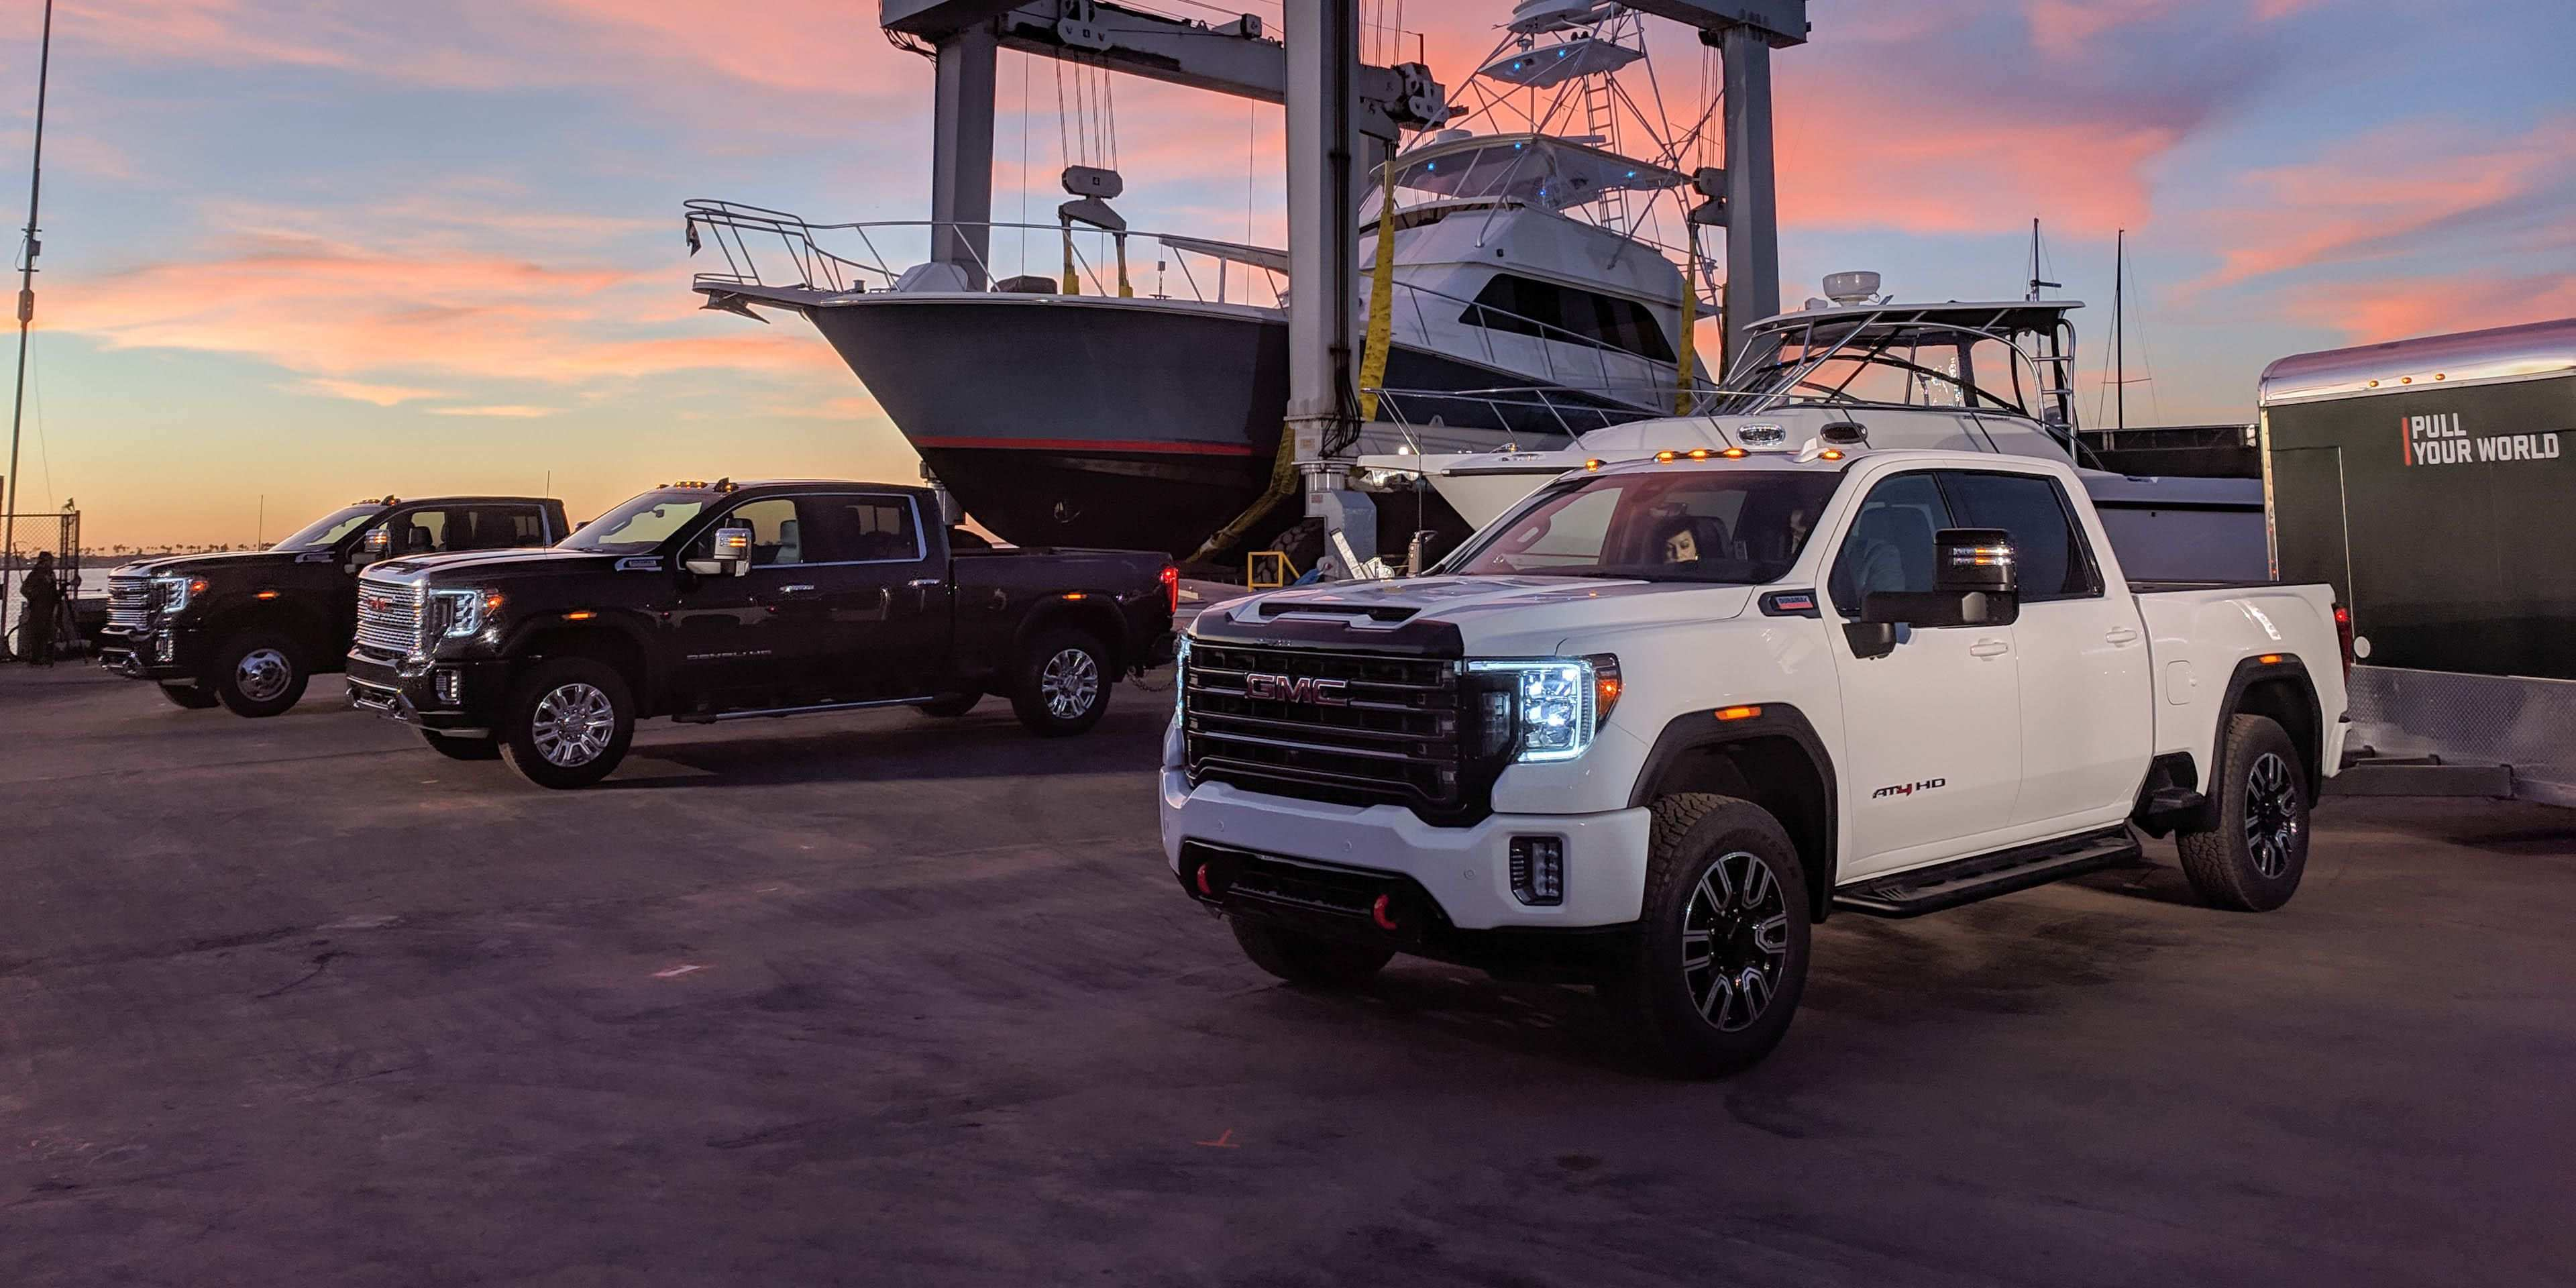 82 Best 2020 GMC Sierra 1500 Diesel Images